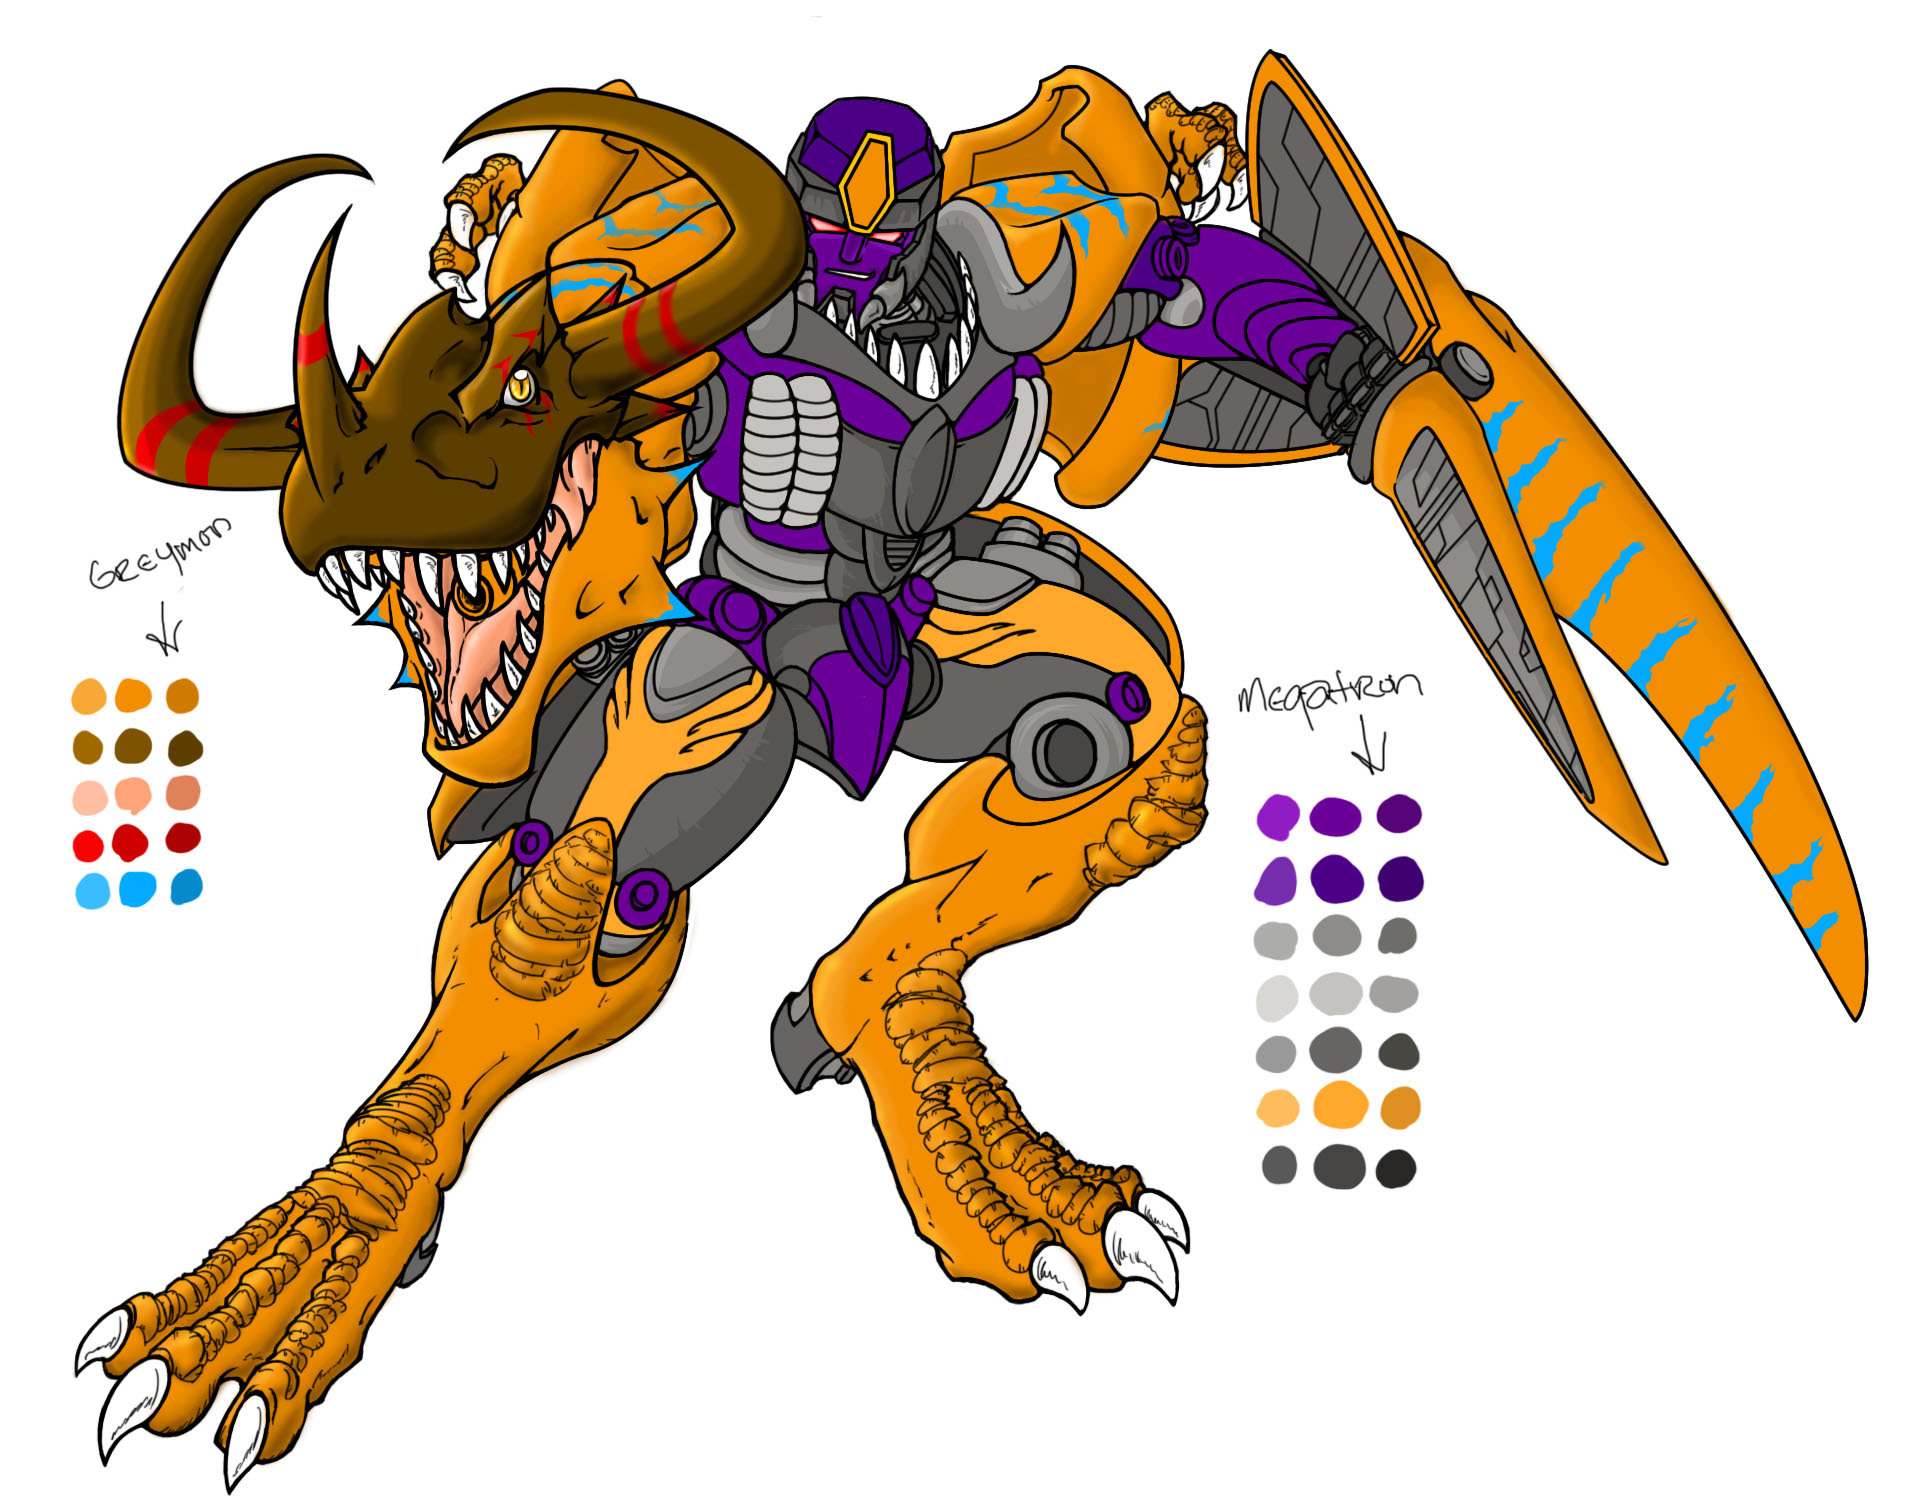 Megatron greymon WTF by HD Wallpaper